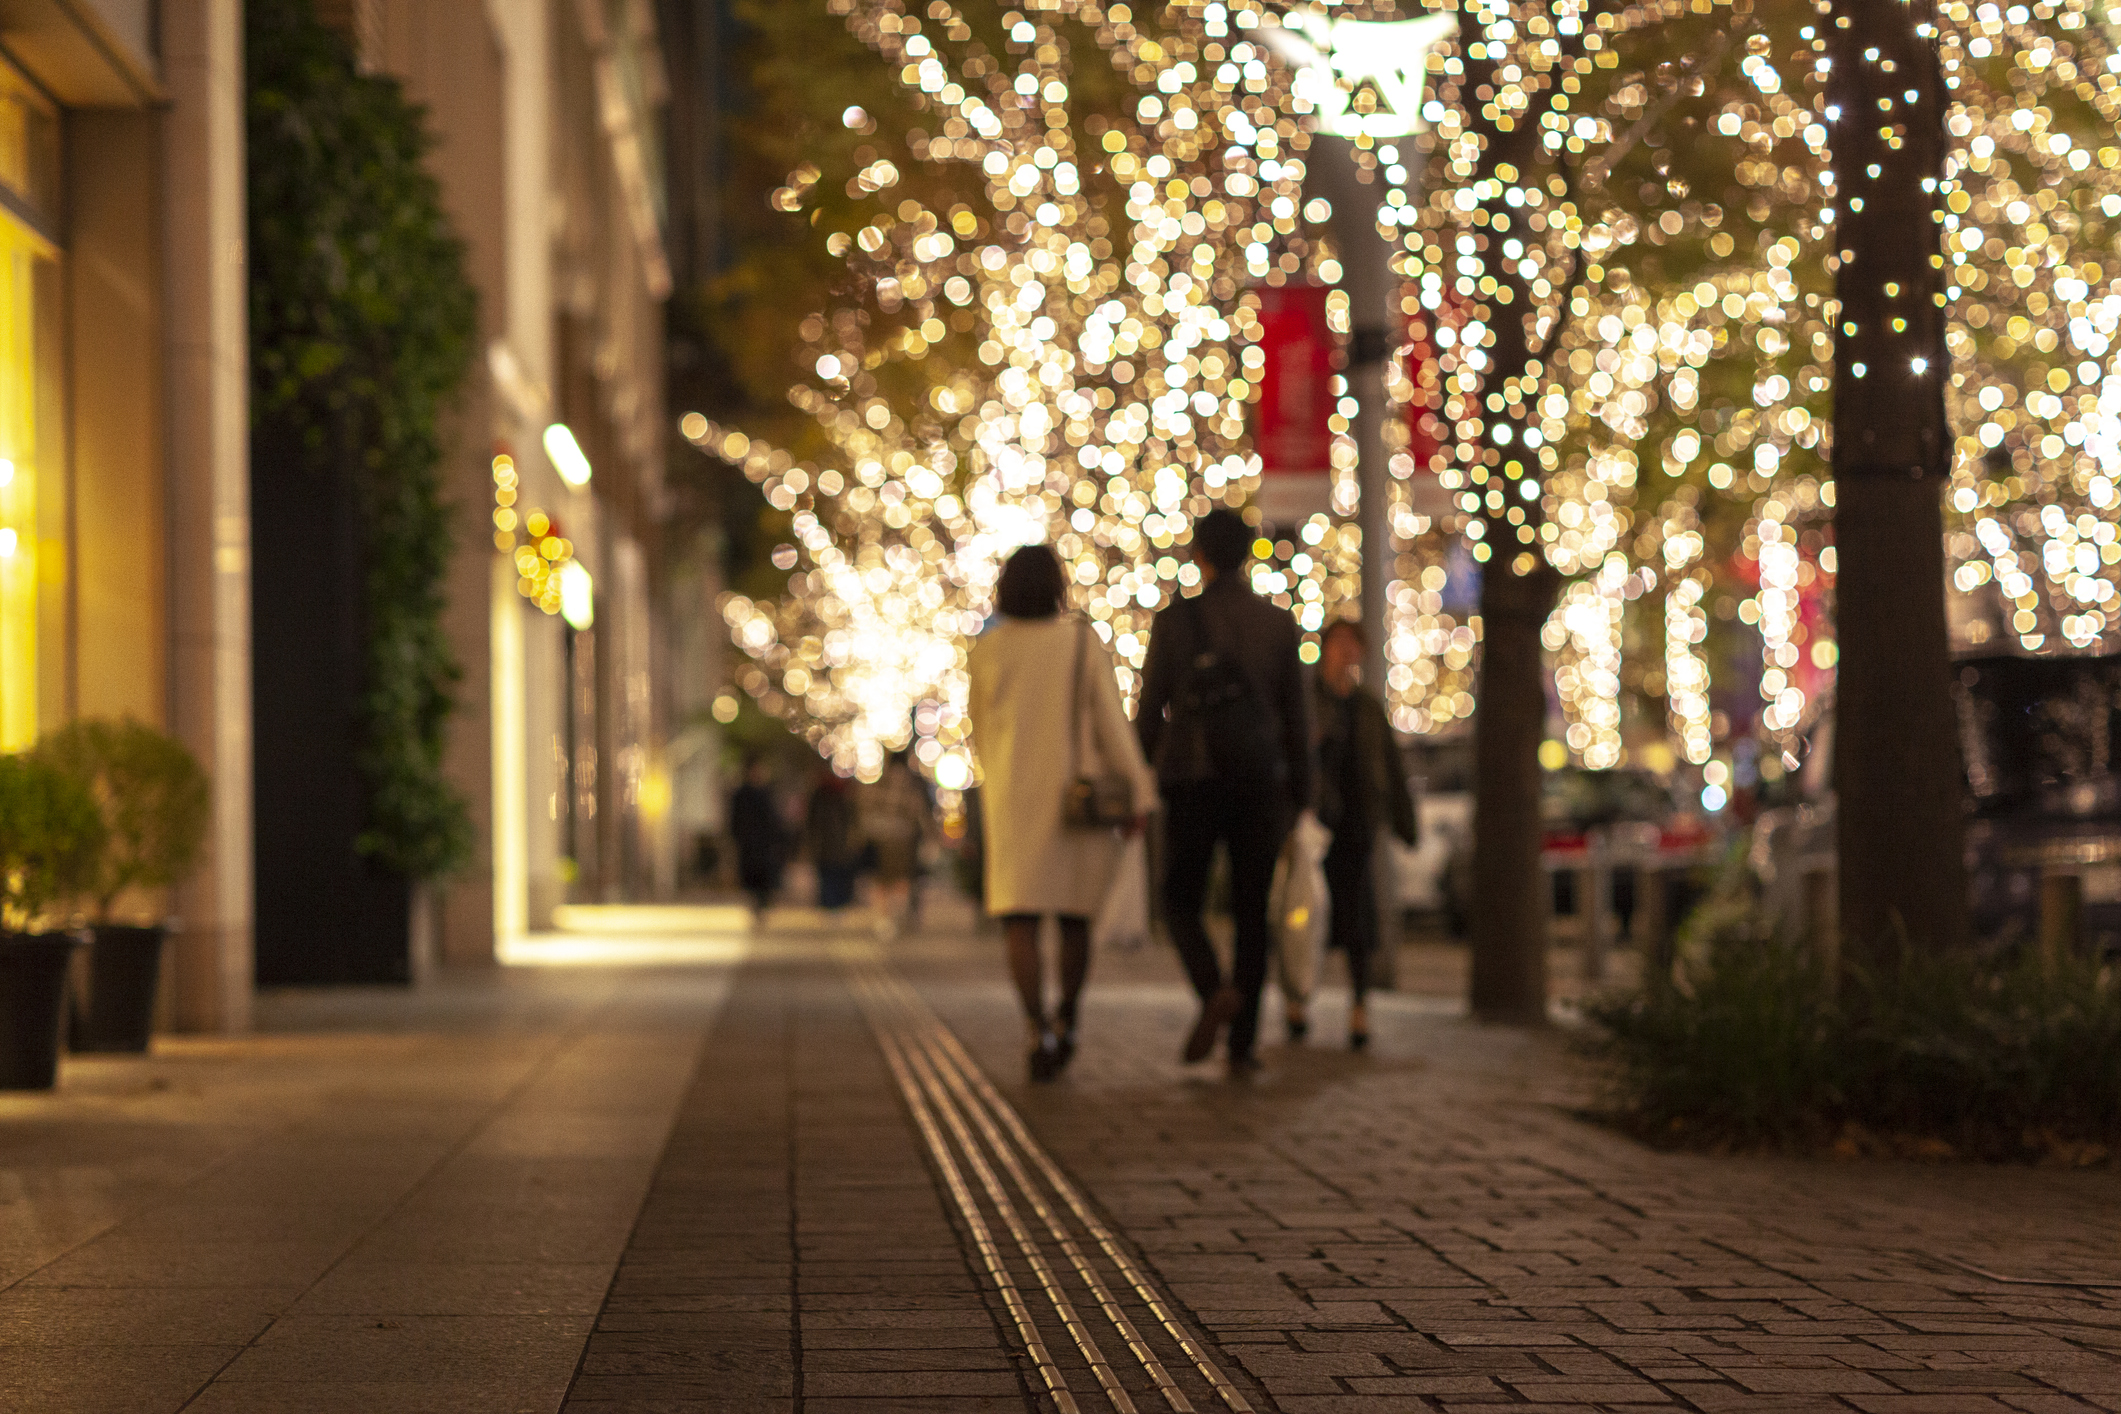 People walking down city street at night lit up by white Christmas lights